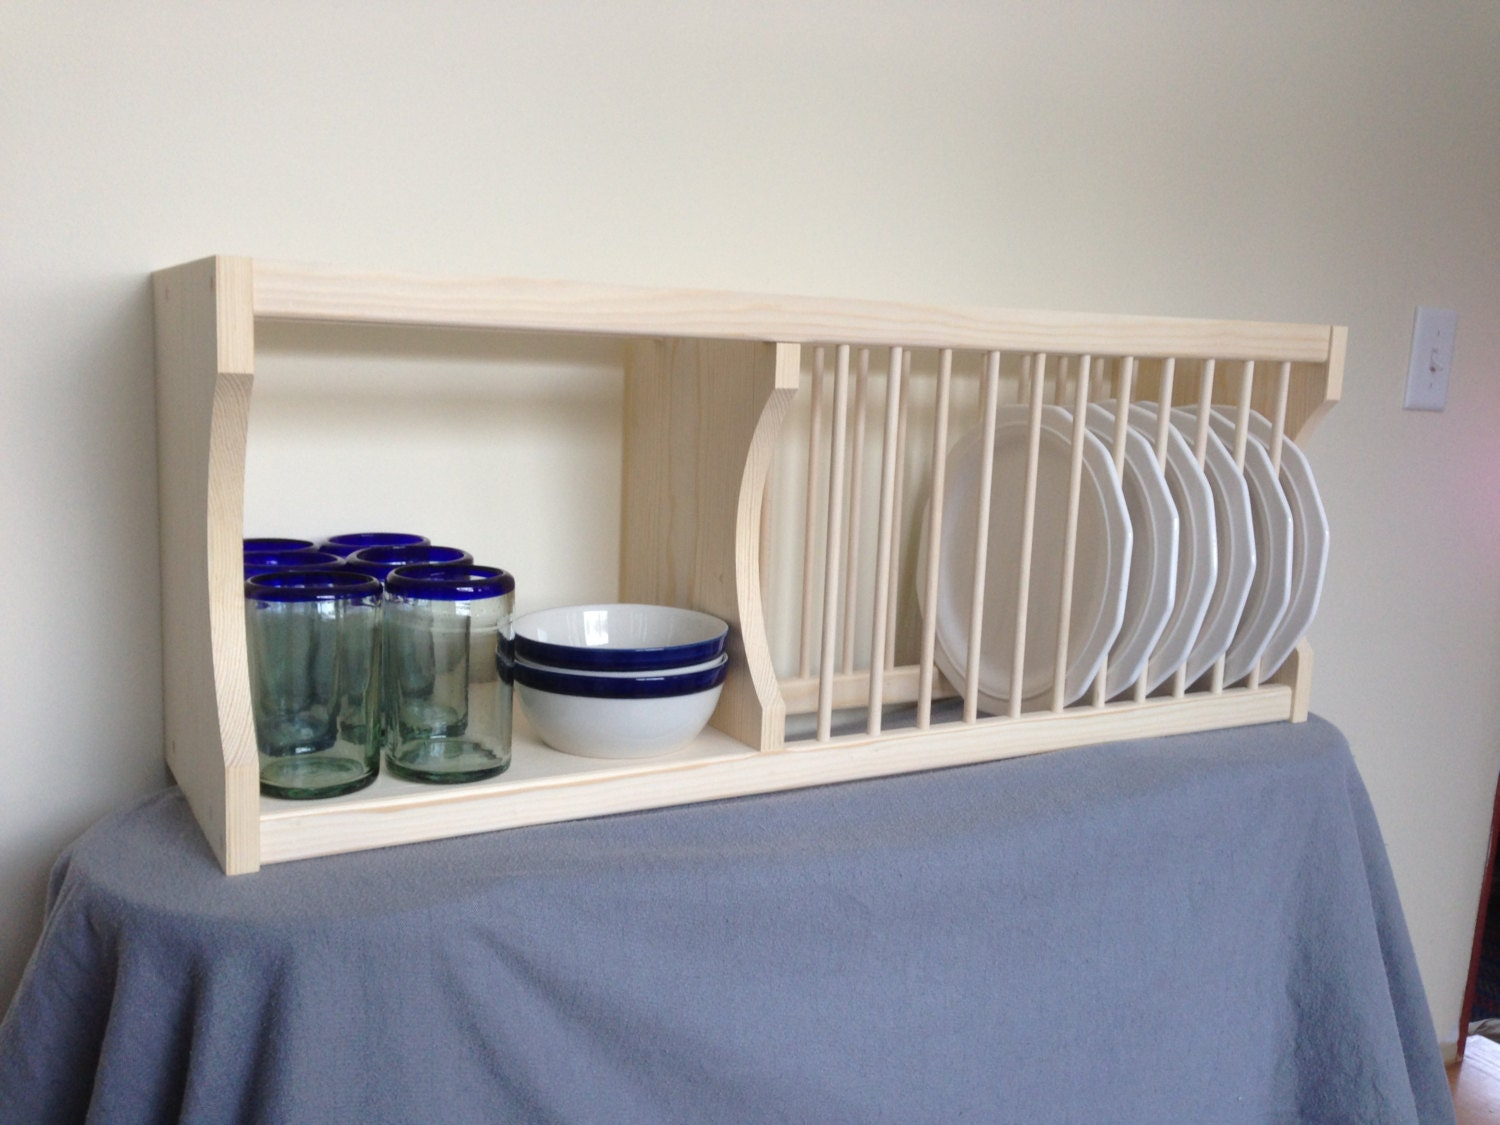 Under Cabinet Plate Rack With Shelf By NicoletWoodProducts On Etsy